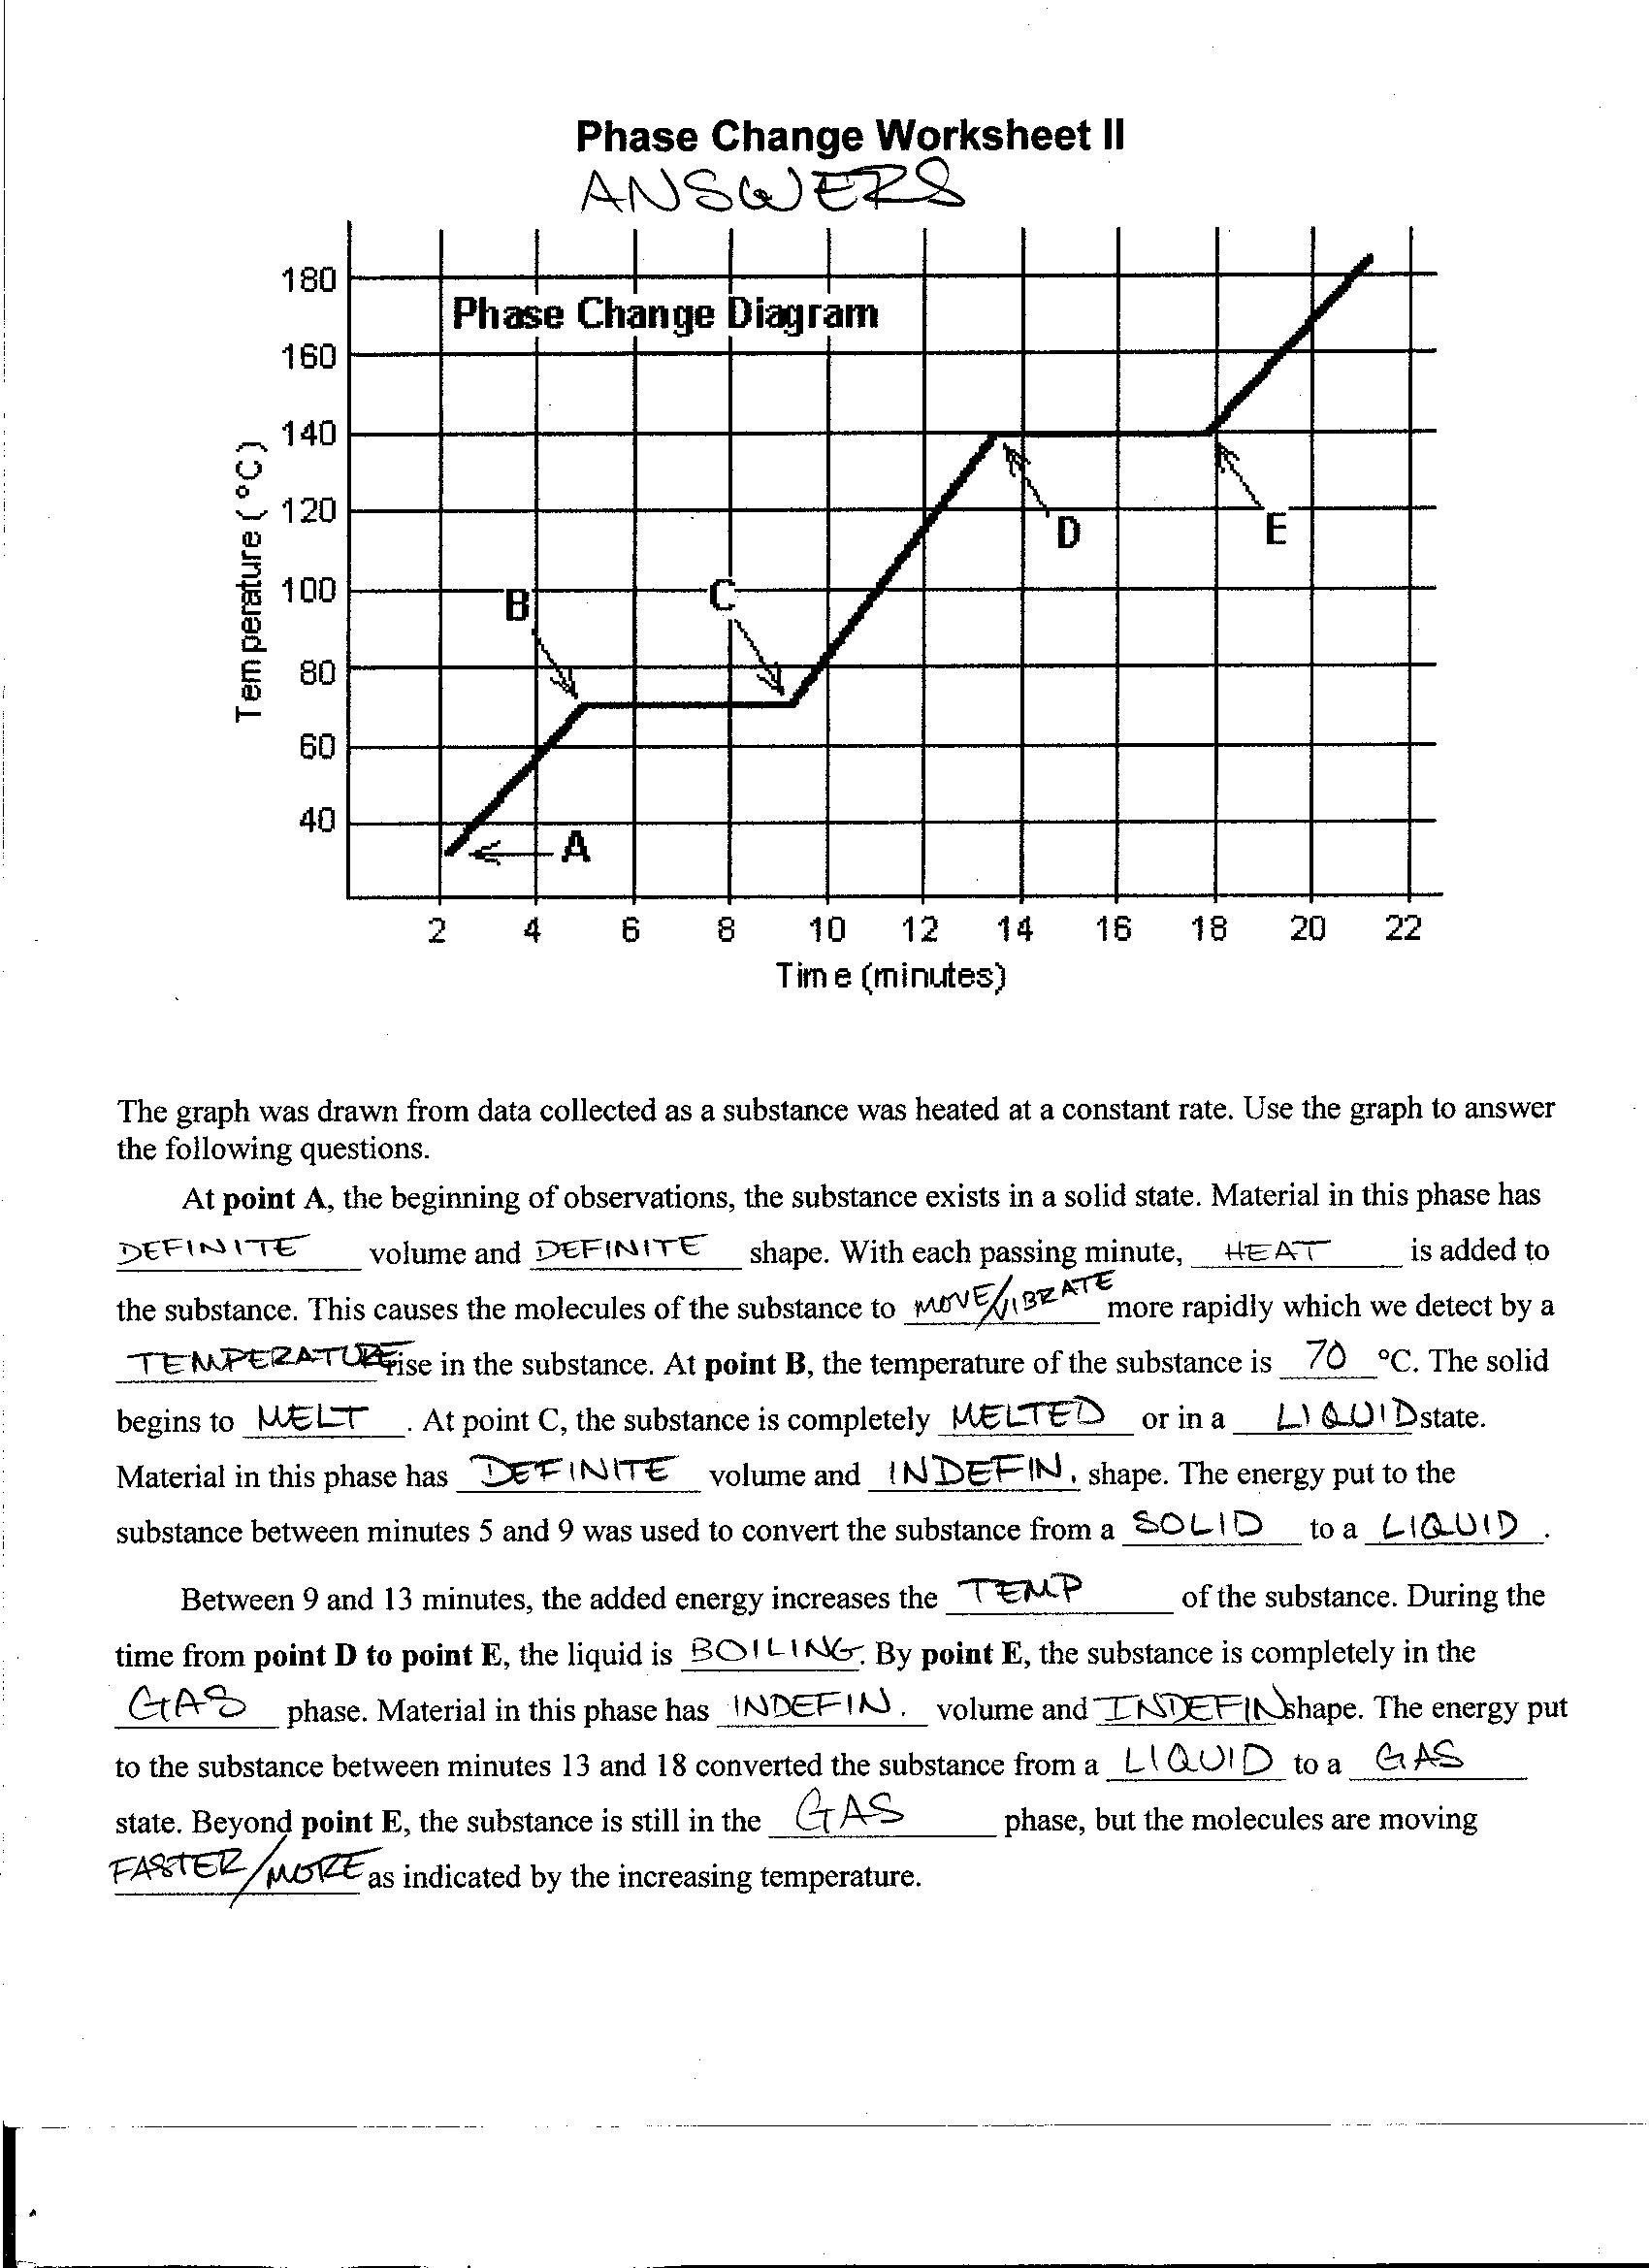 Phase Change Worksheet With Answers Free Worksheets Library